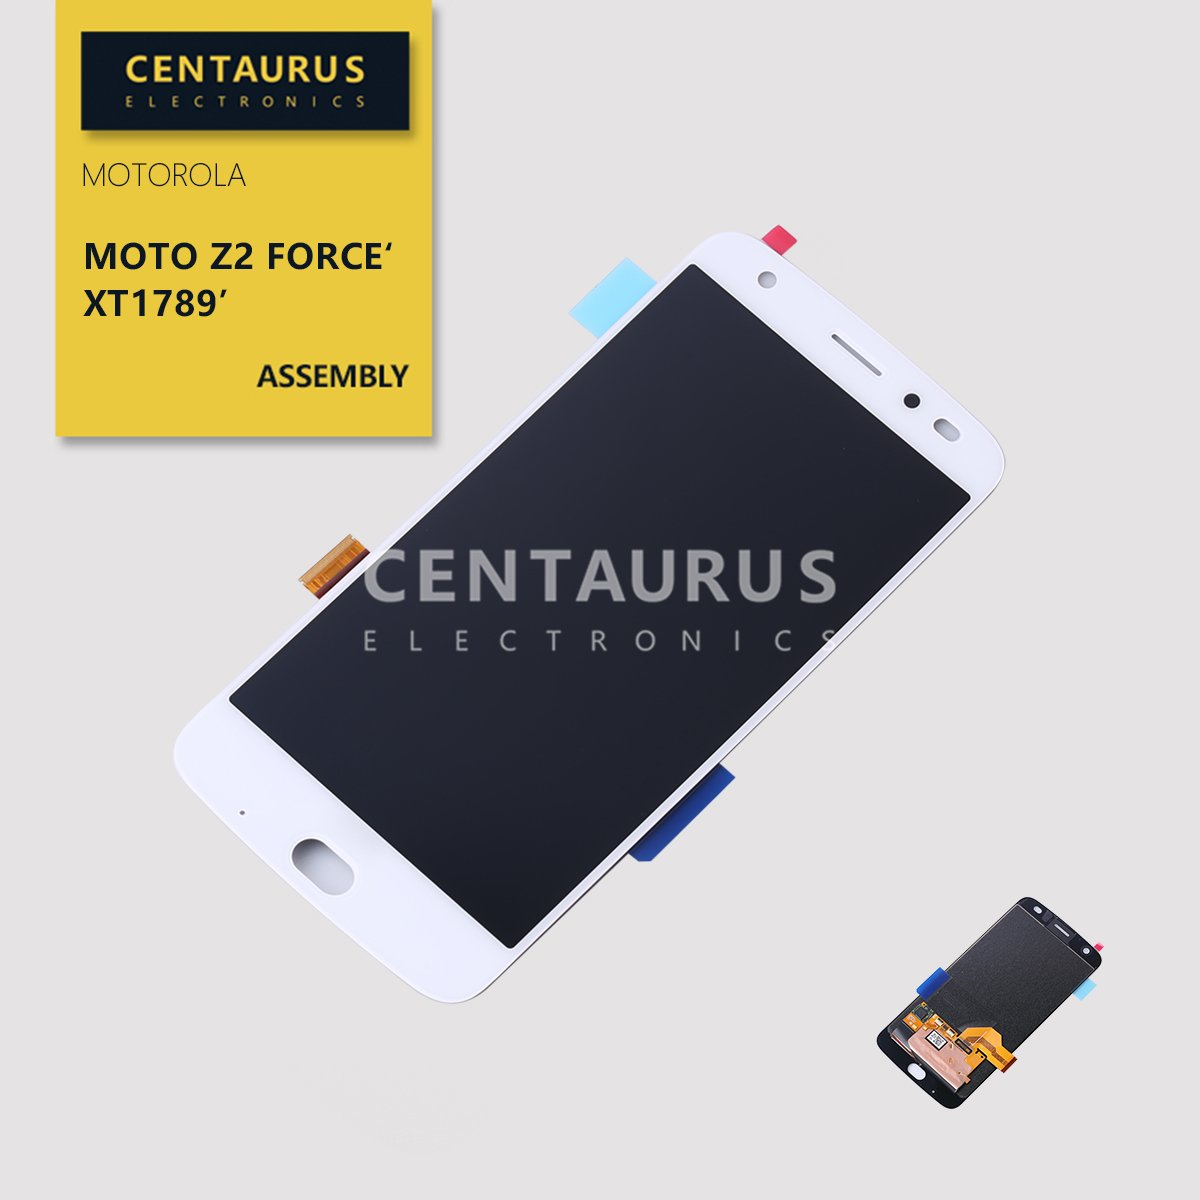 Assembly for Motorola Moto Z2 Force XT1789-01 XT1789-02 XT1789-03 XT1789-04 XT1789-05 XT1789-06 5.5 inch LCD Display Touch Screen Digitizer Panel Complete Full Replacement (White)